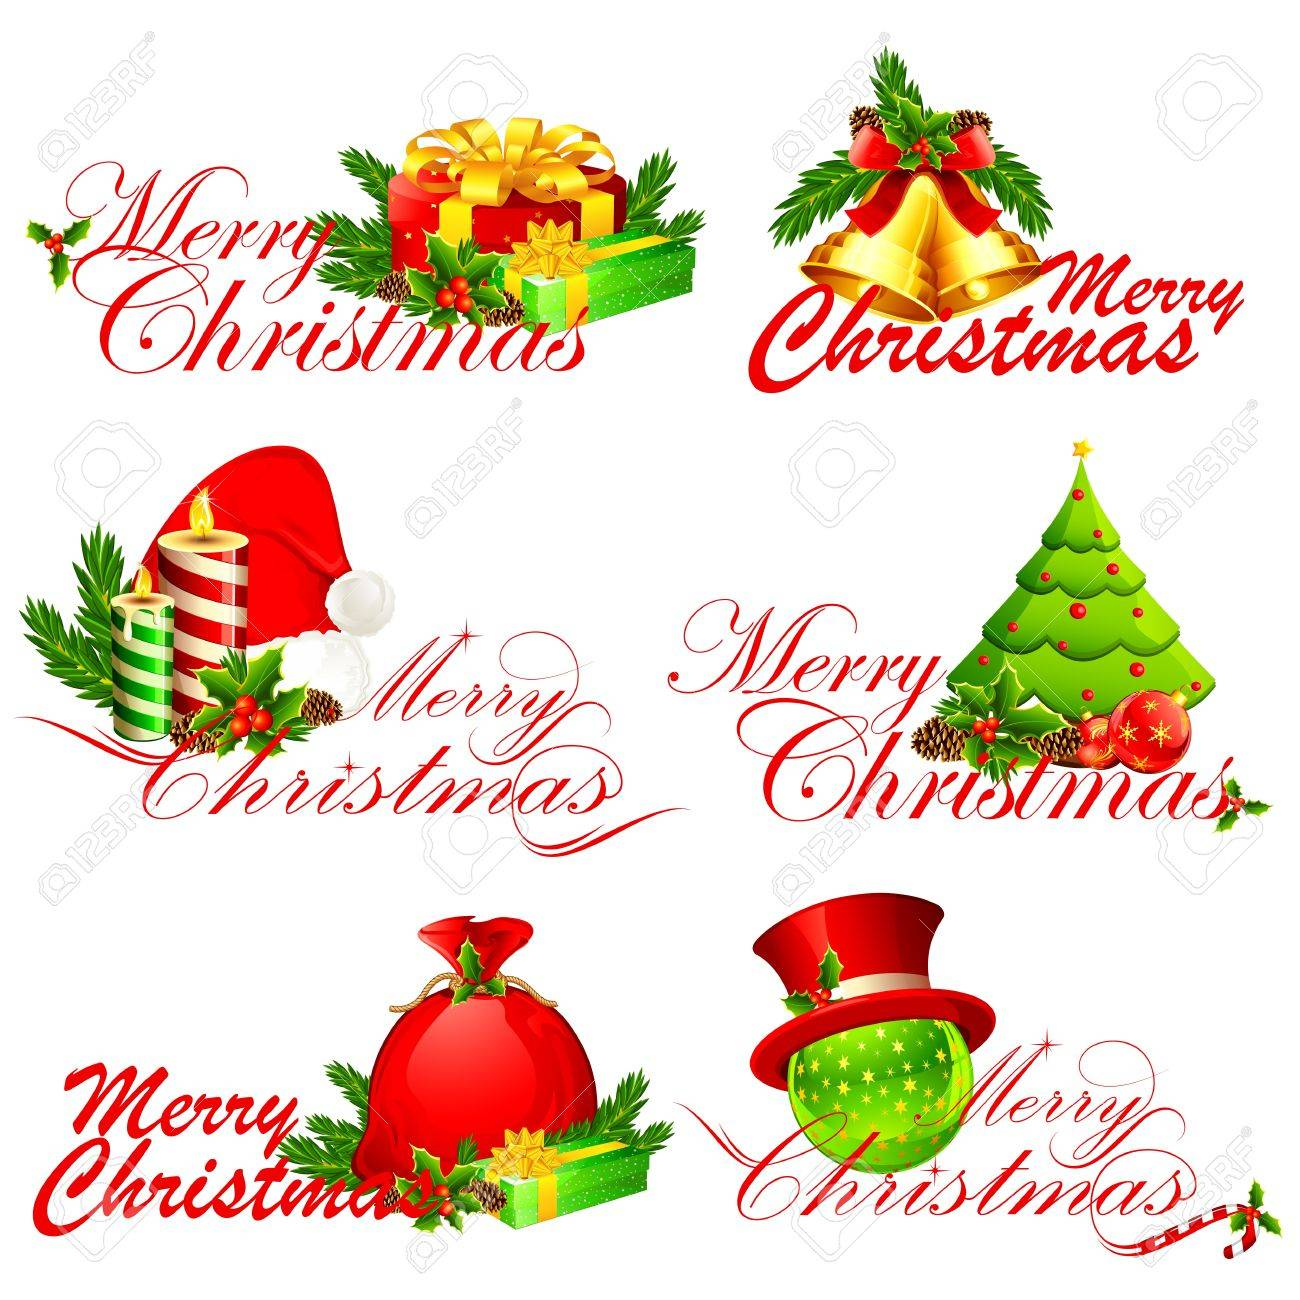 illustration of merry christmas text with different element Stock Vector - 11494058